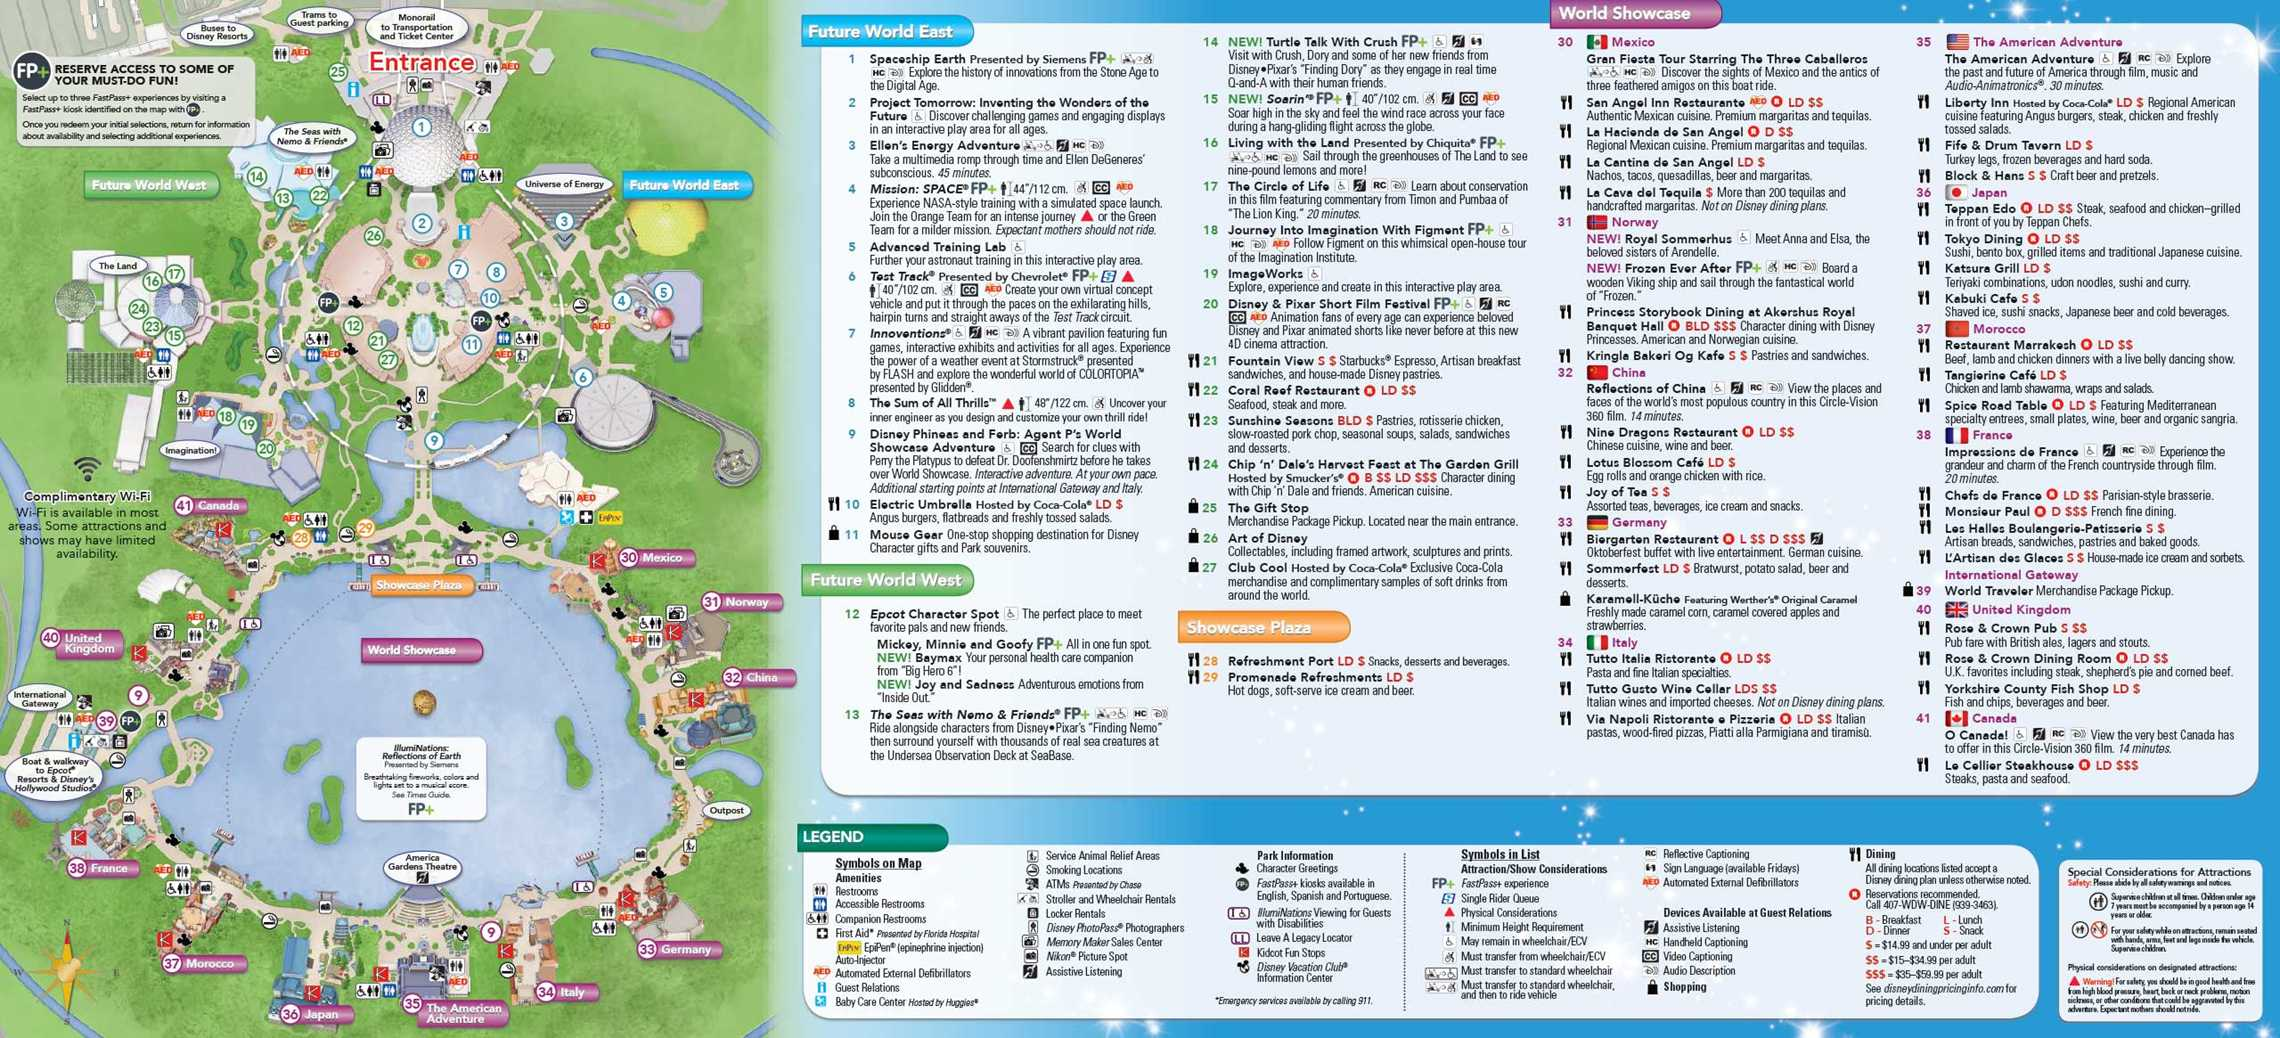 Epcot guide map June 2016 - Back